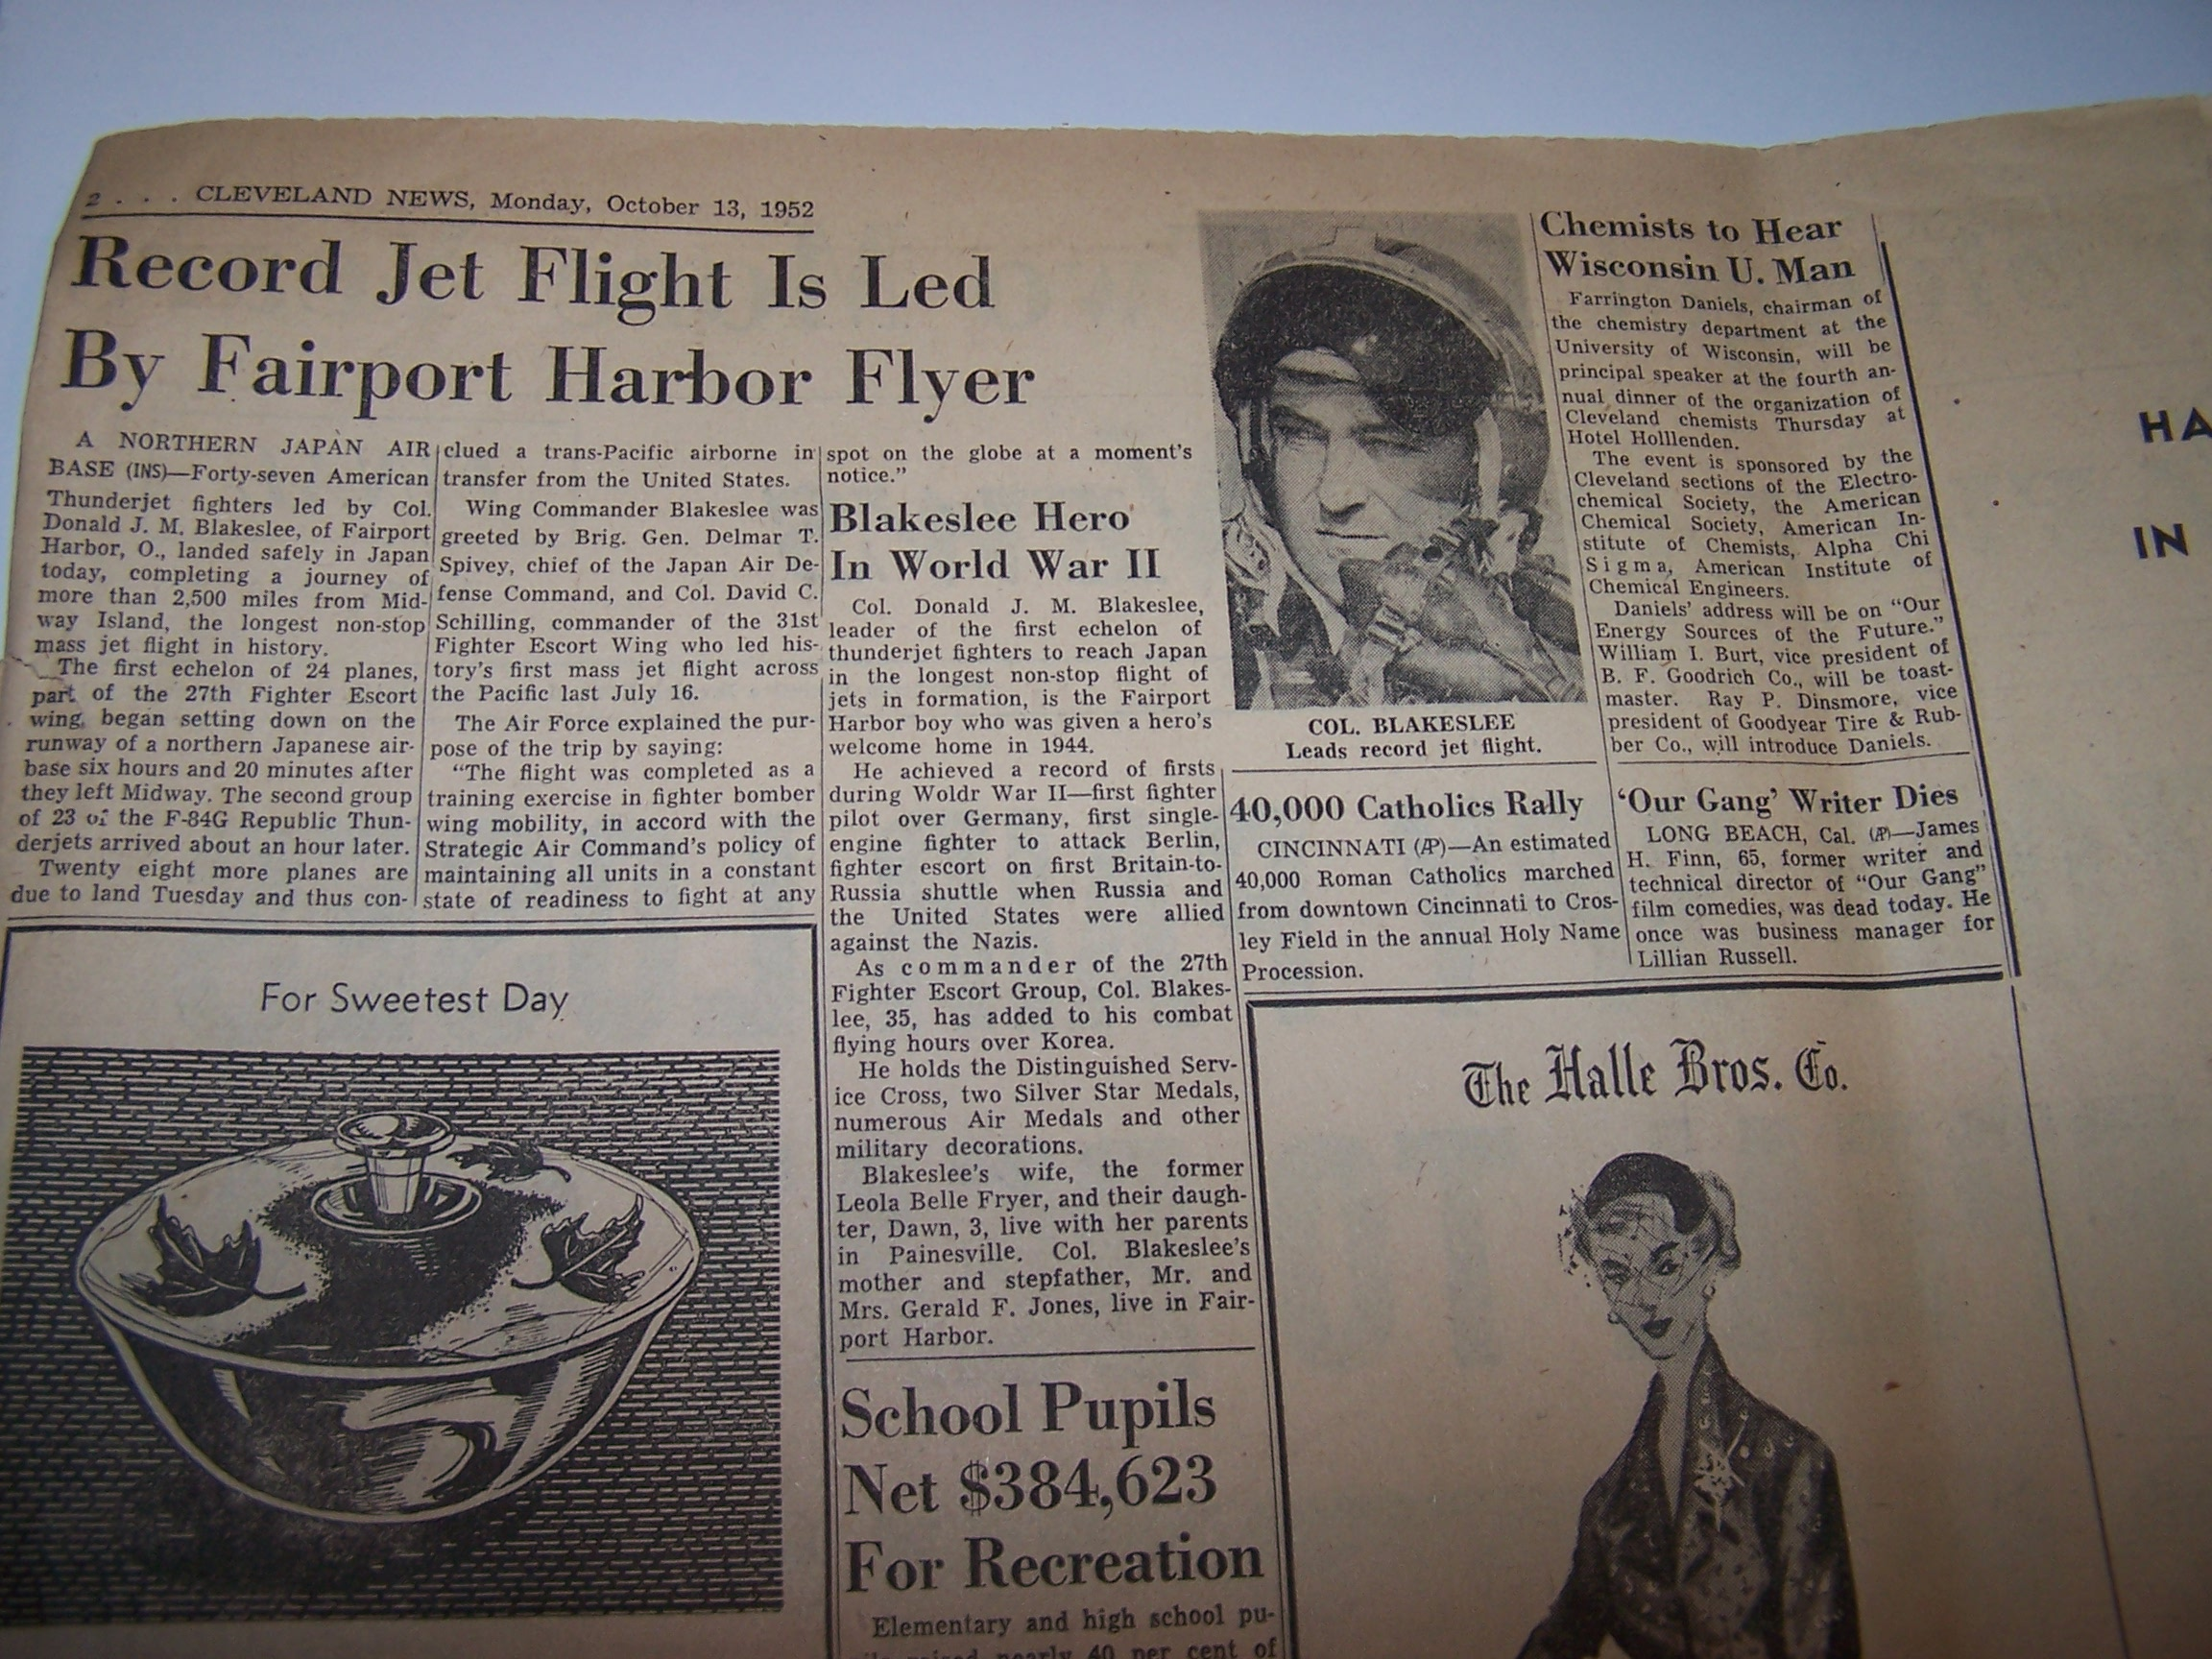 Image 2 of Rosenberg Spies Lose Appeal, 1952, Cleveland News Newspaper